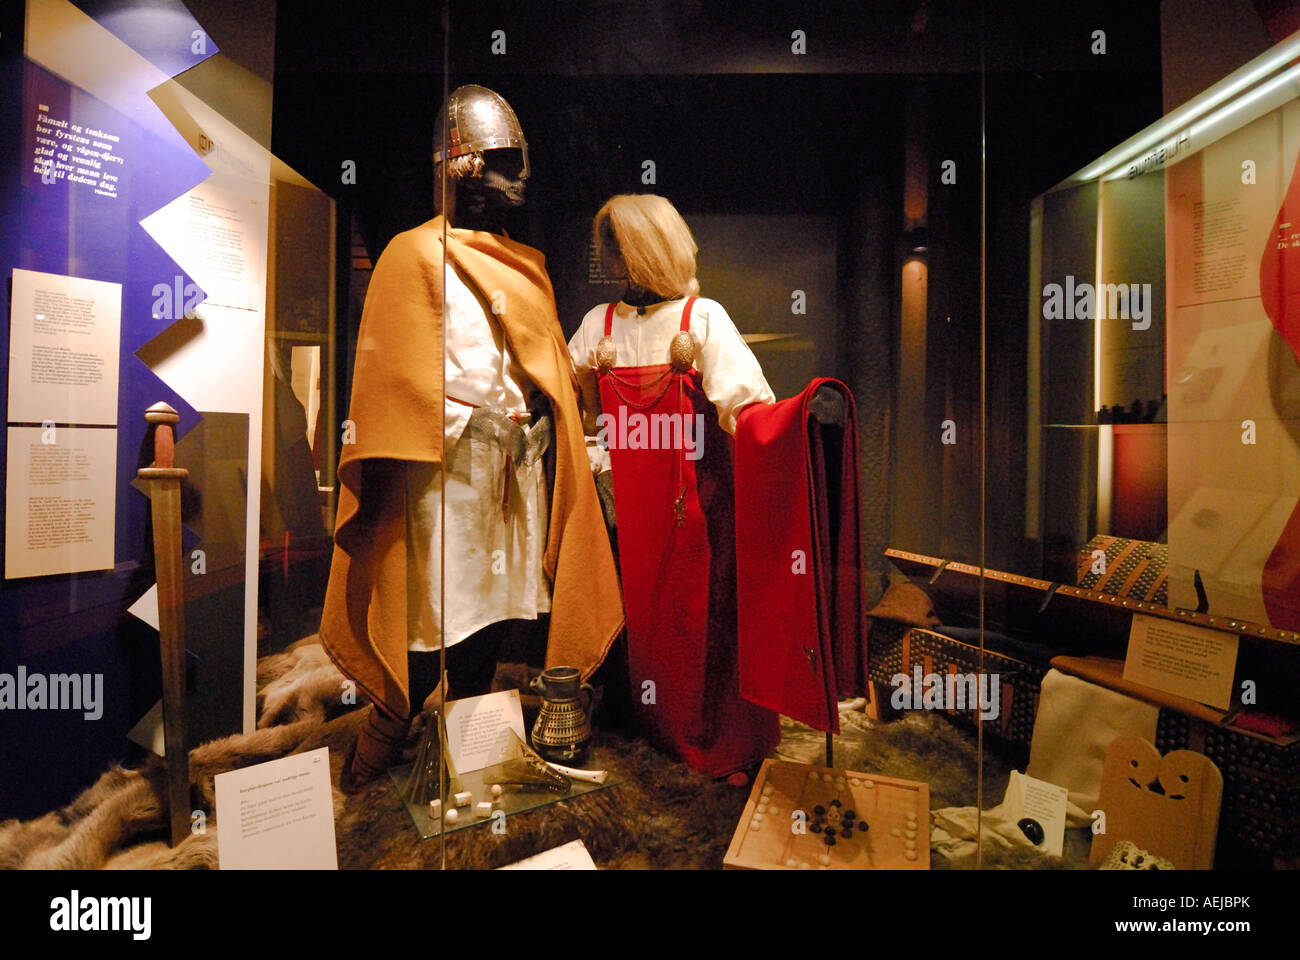 Garments, viking museum, Bostad Borg, Lofoten, Nordland, Norway - Stock Image